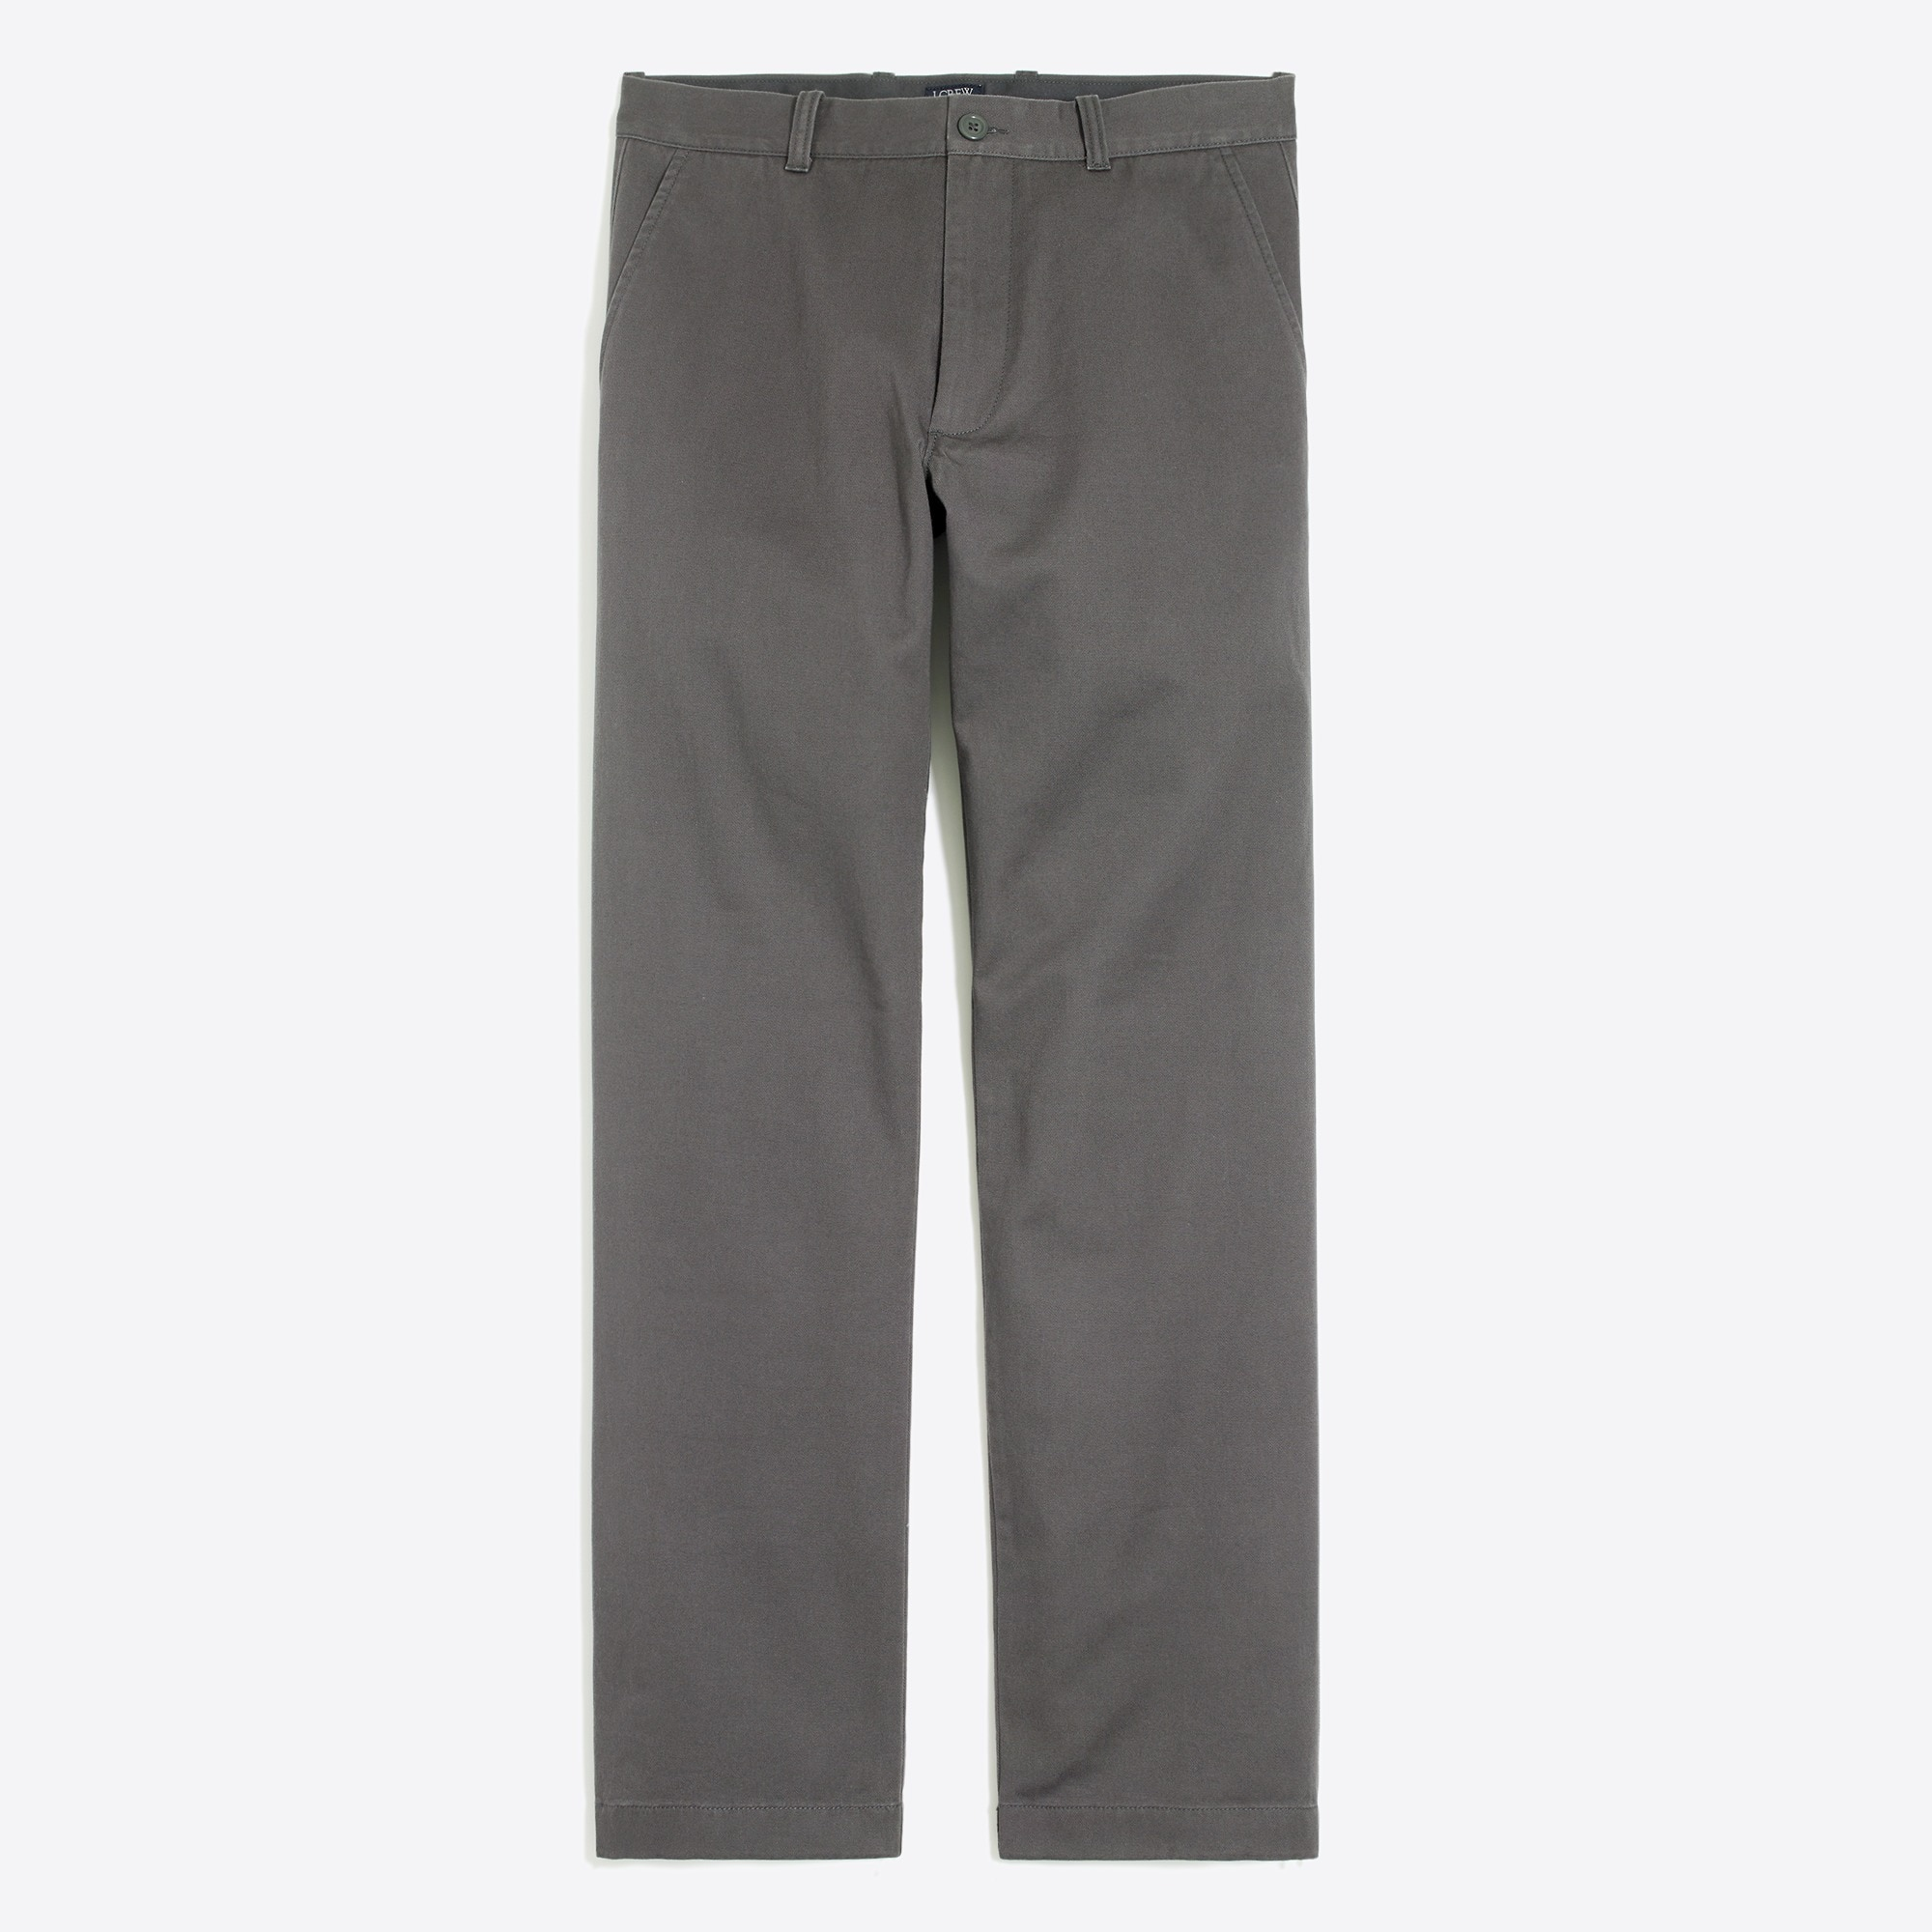 Barrow relaxed-fit broken-in chino factorymen pants c